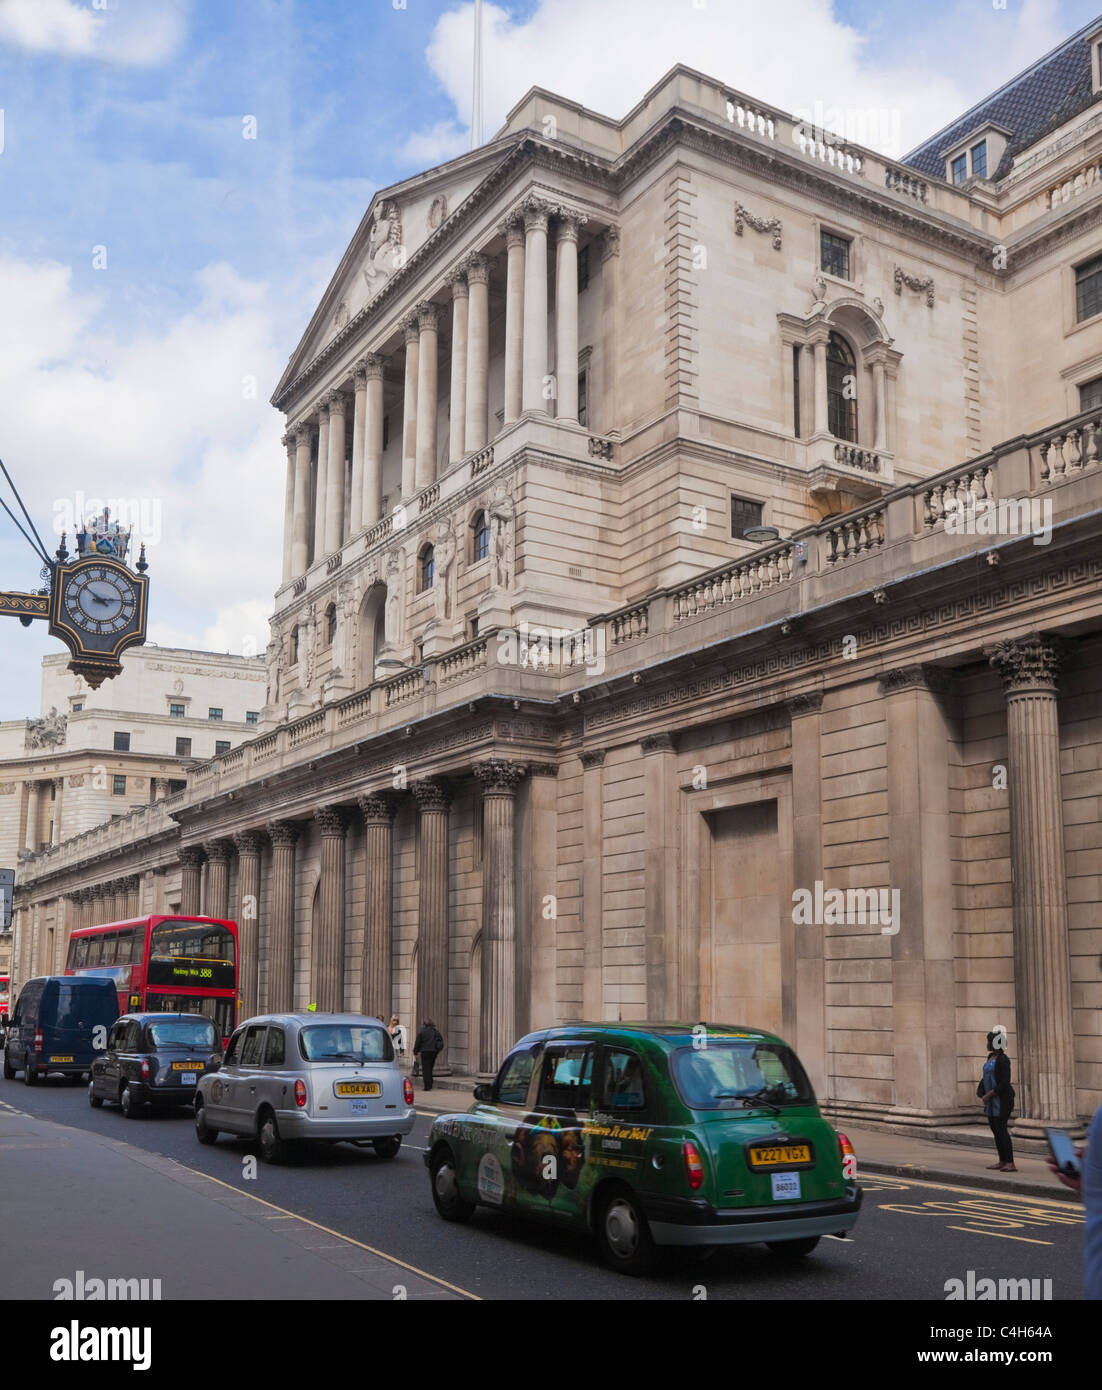 Bank of England in the city of London - Stock Image